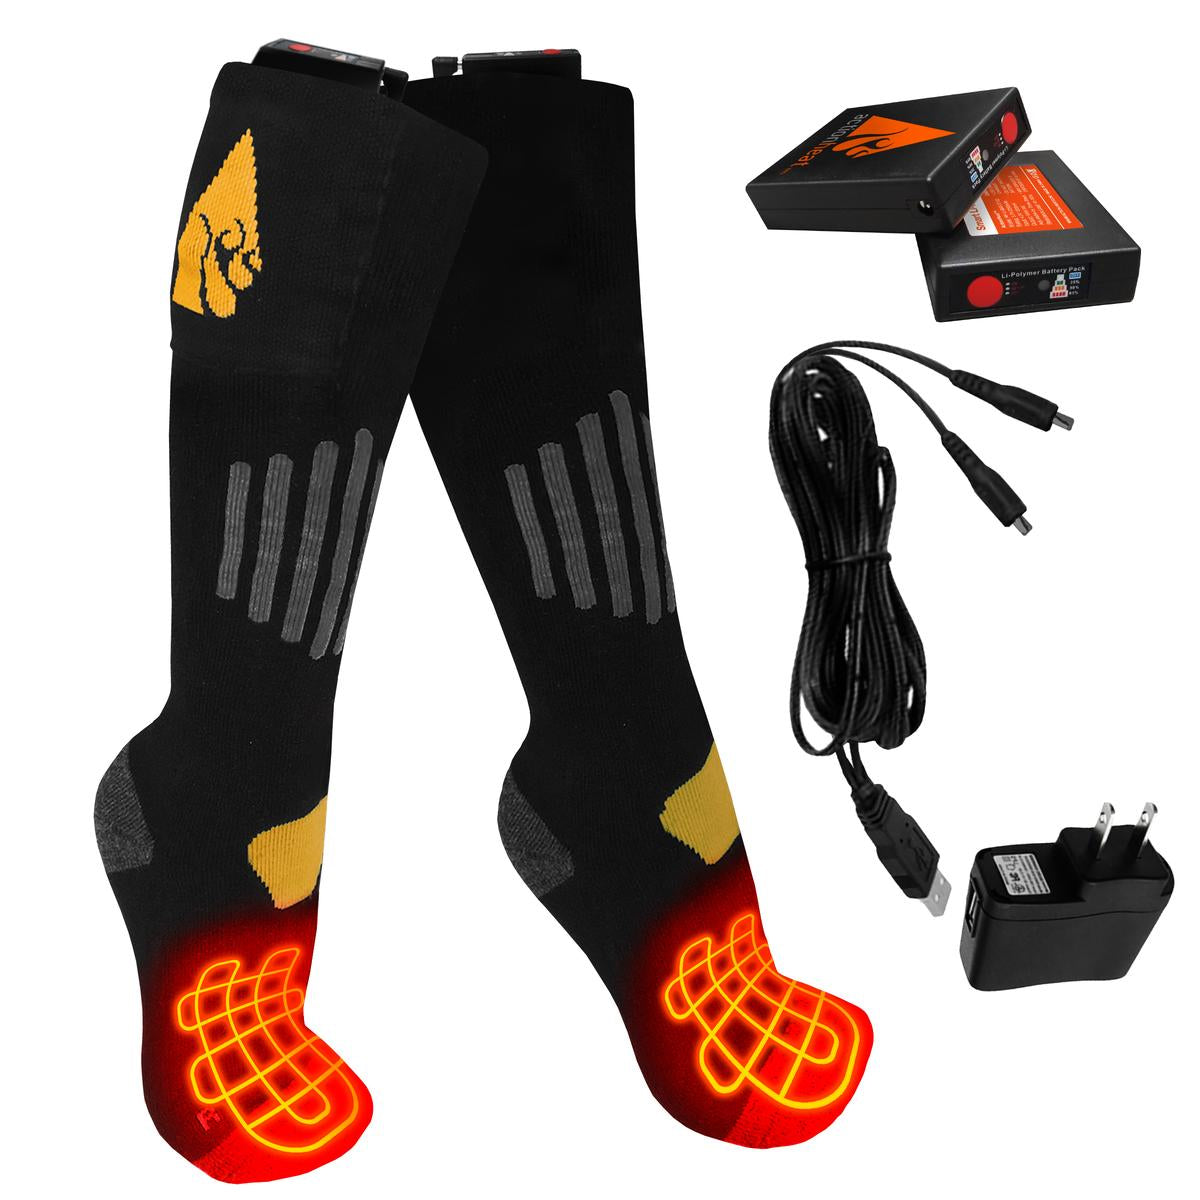 ActionHeat 3.7V Rechargeable Battery Heated Socks - Cotton - Full Set